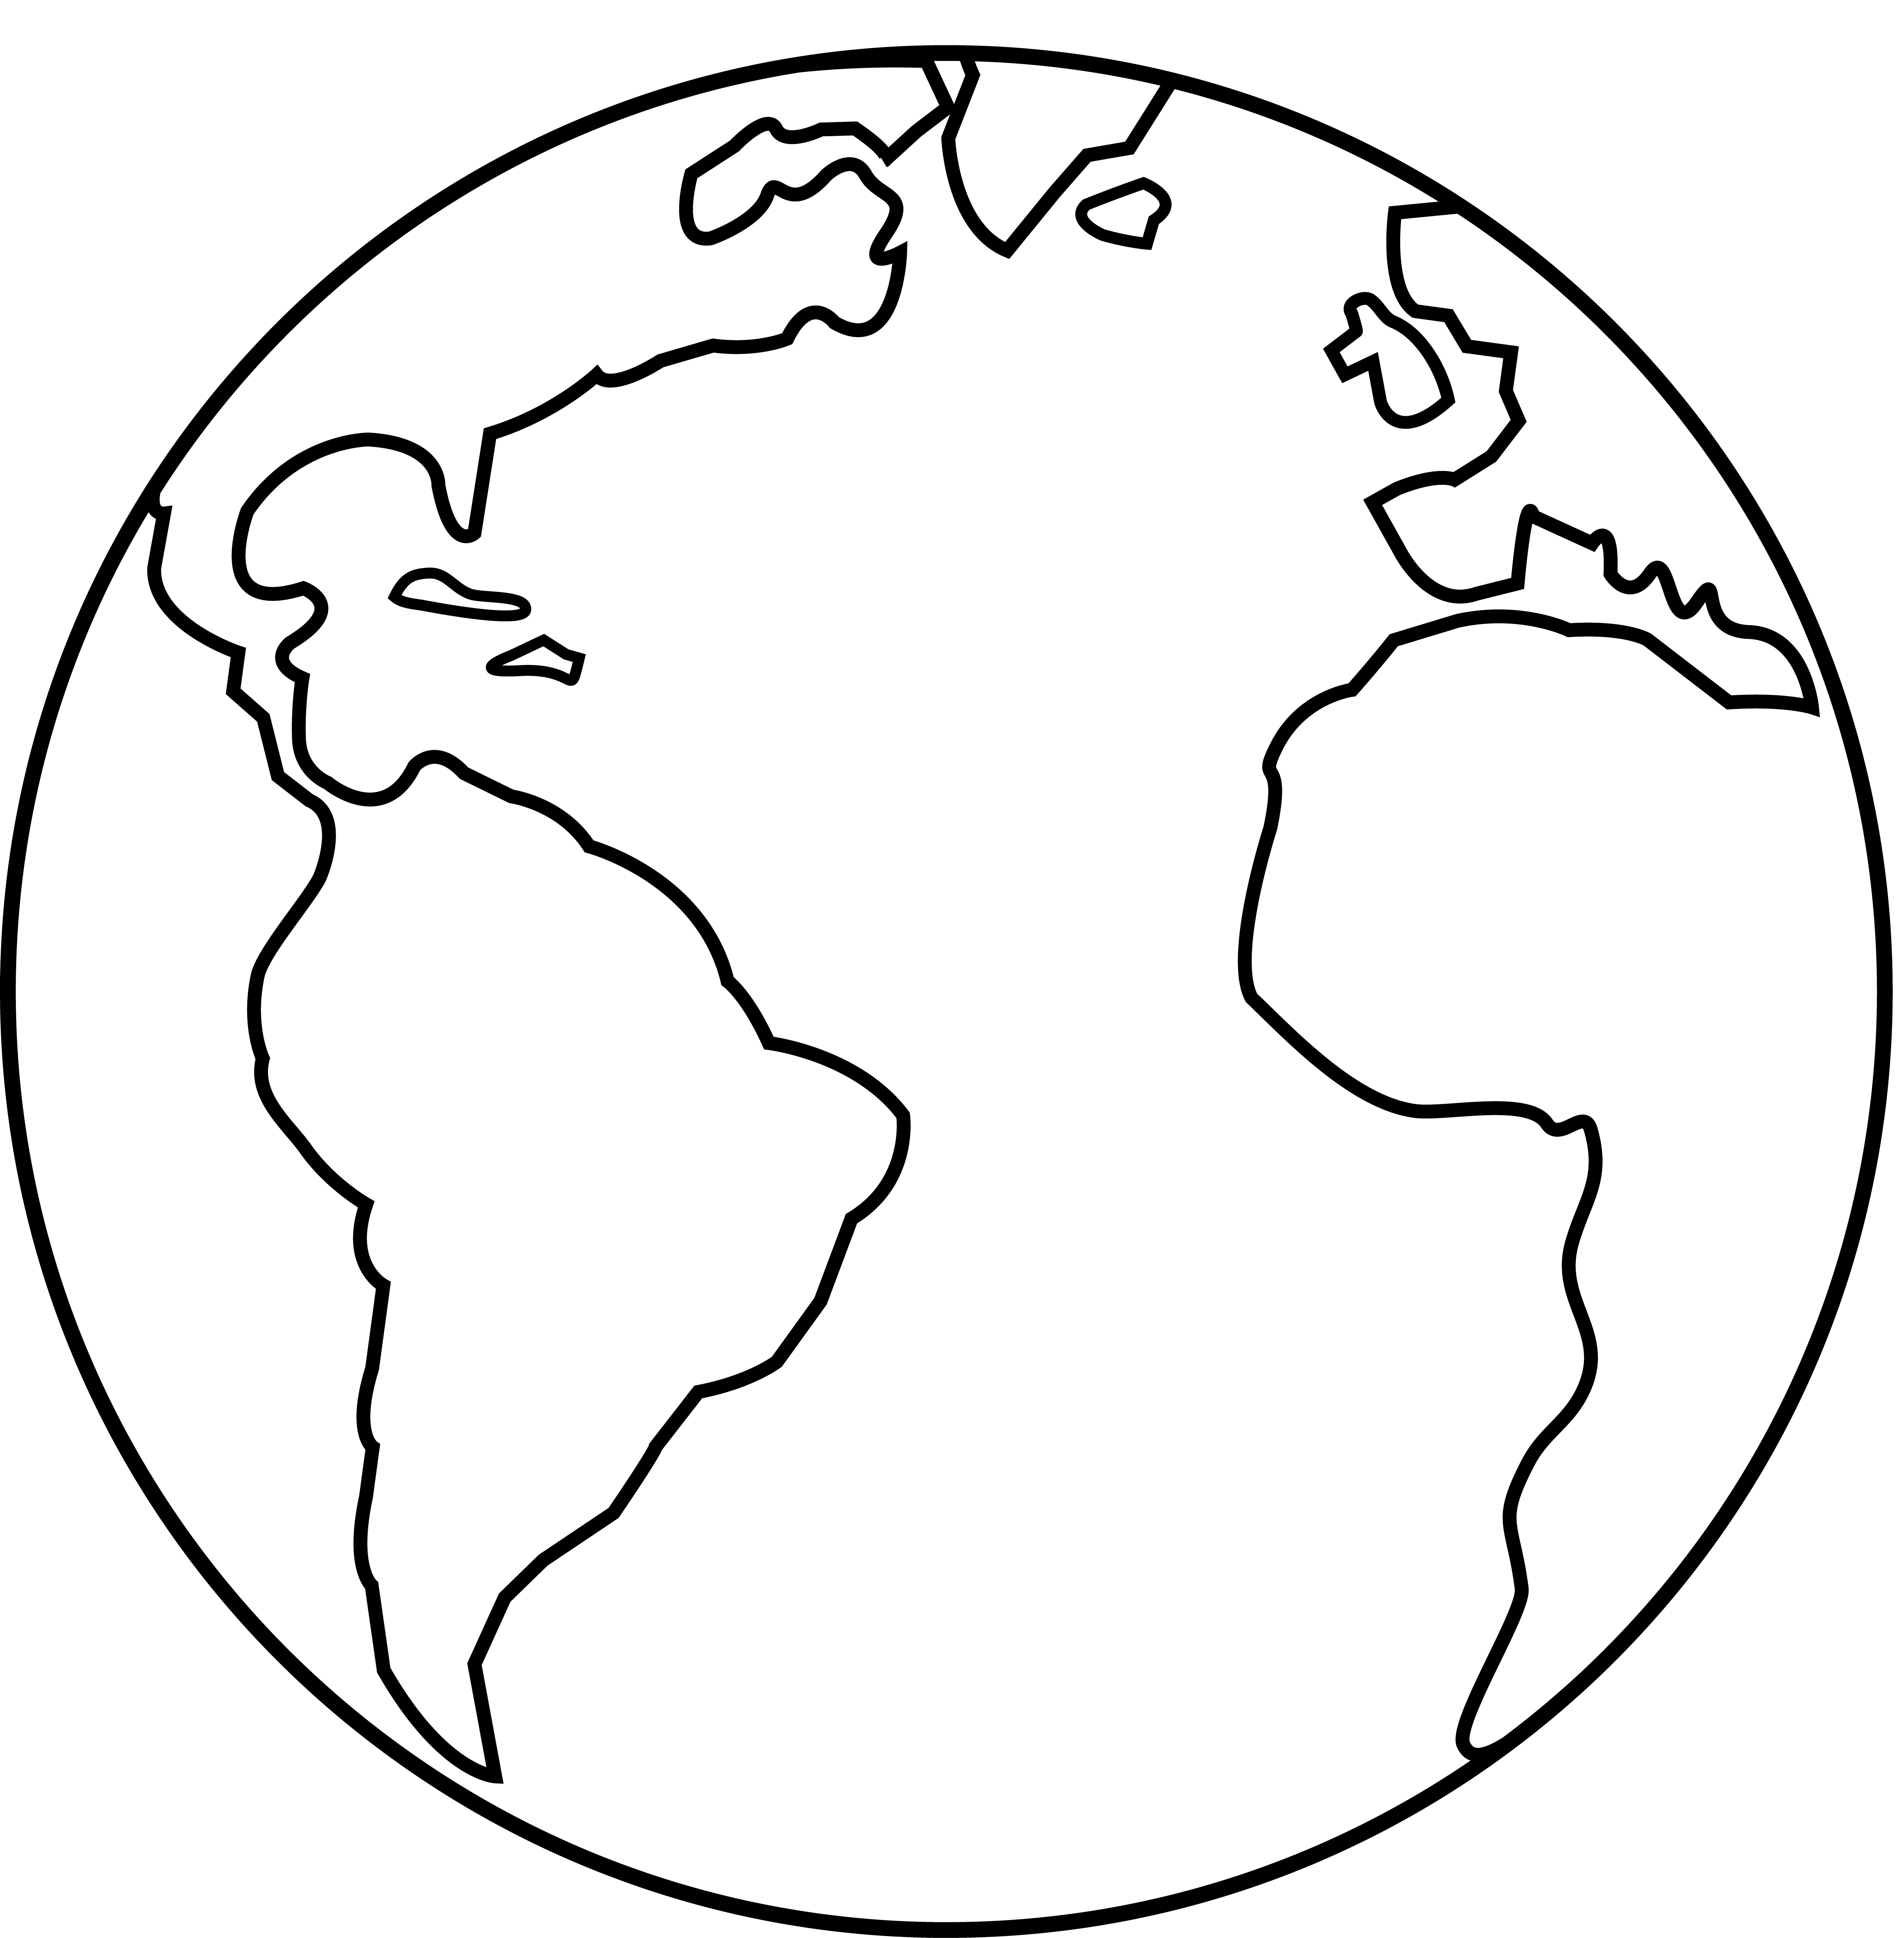 Drawn planet transparent Earth  Free clipart of